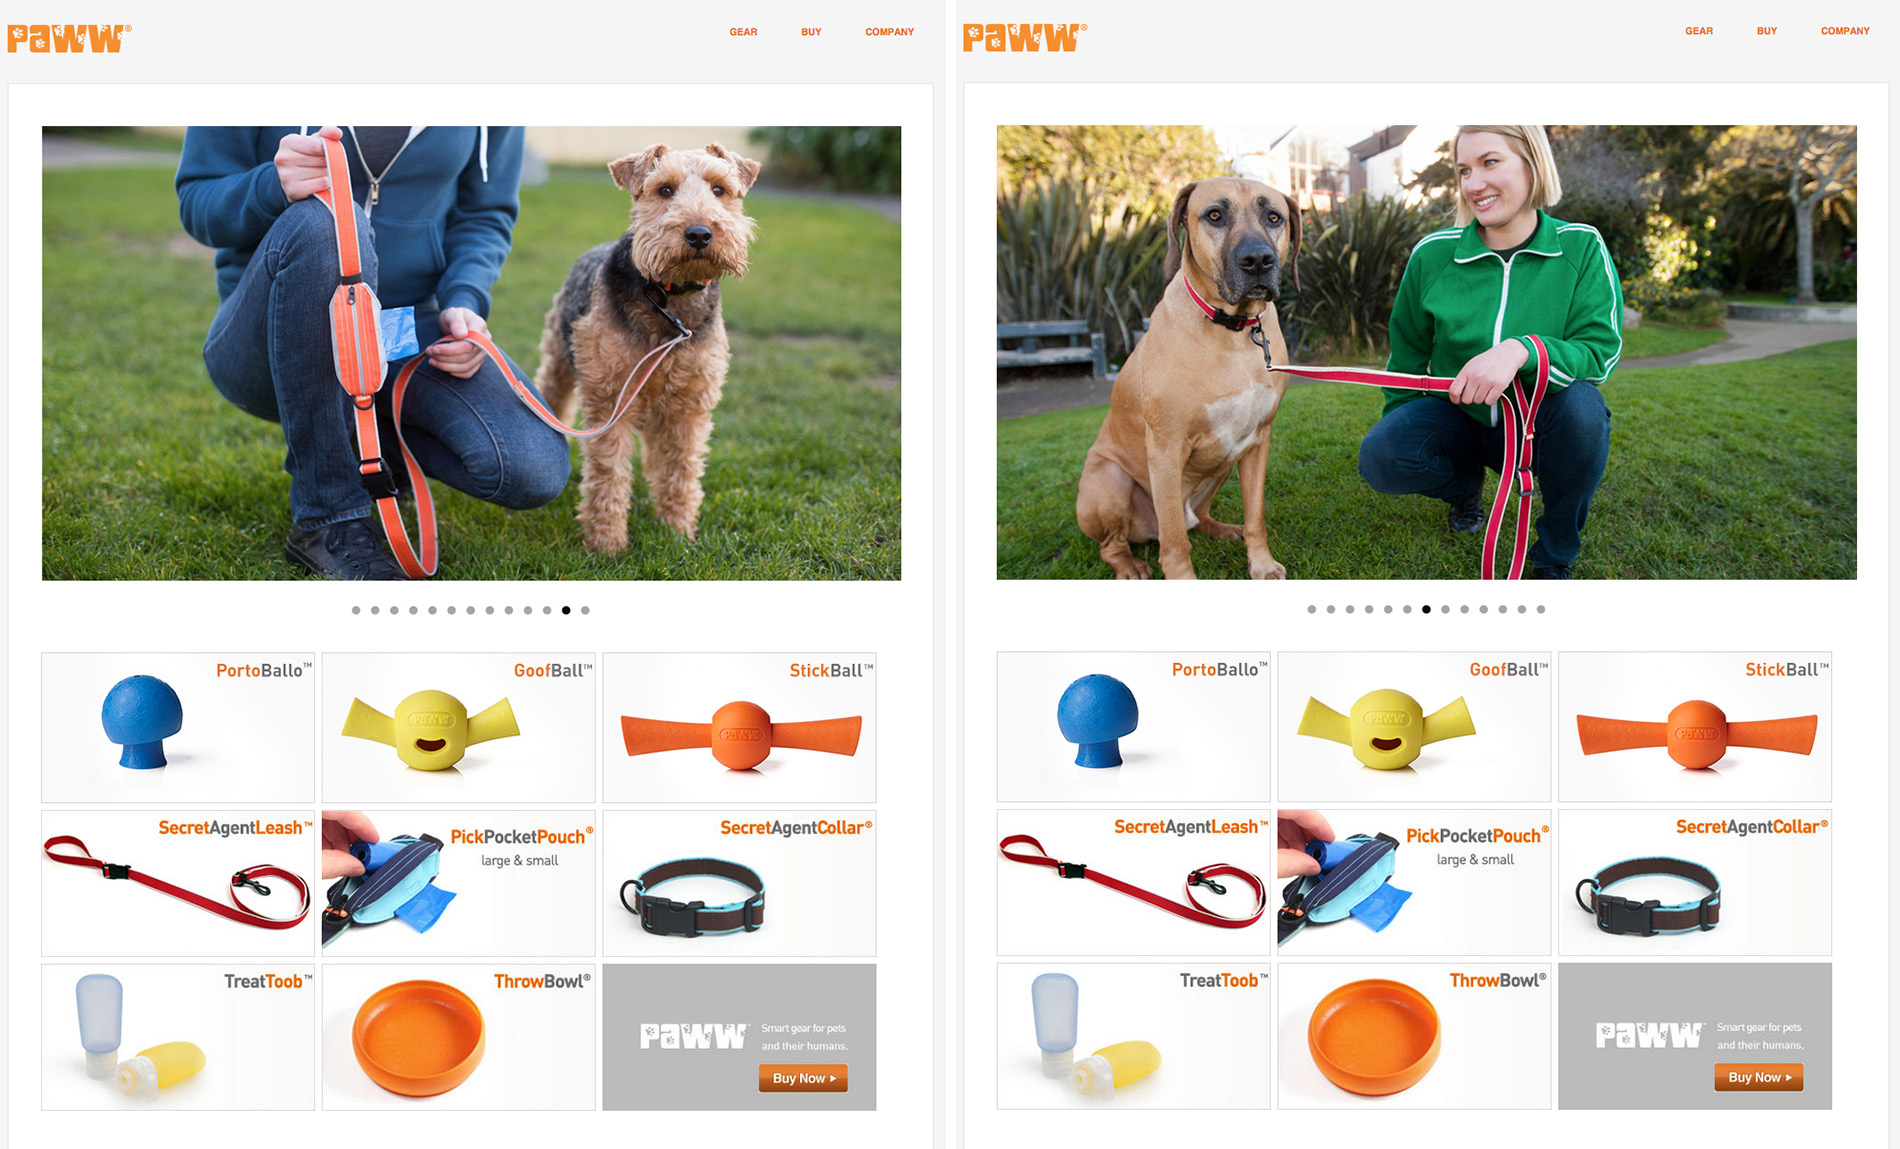 Advertising Photography | PAWW Dog Leash by Mark Rogers